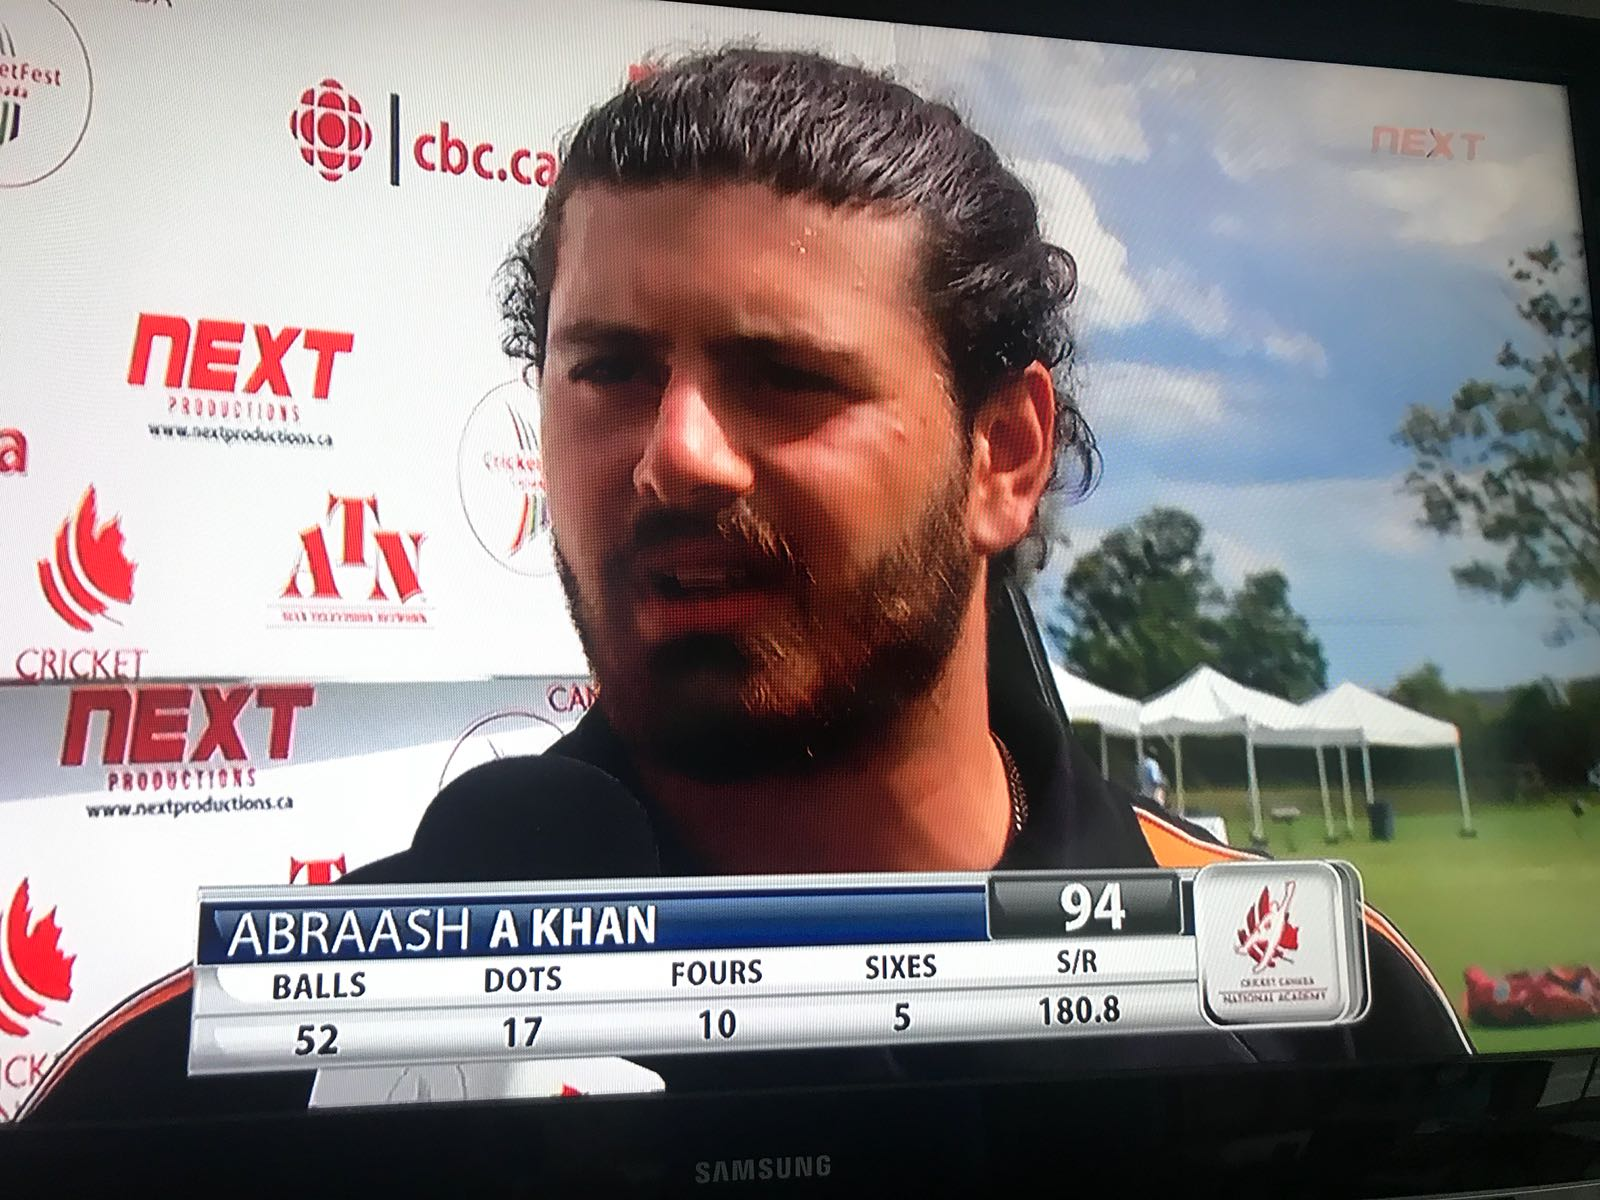 At age 20, Abraash has played in two U19 World Cups (one as captain). He recently played in the Global T20 pro franchise cricket and was the leading batsman in the Canada SummerFest.